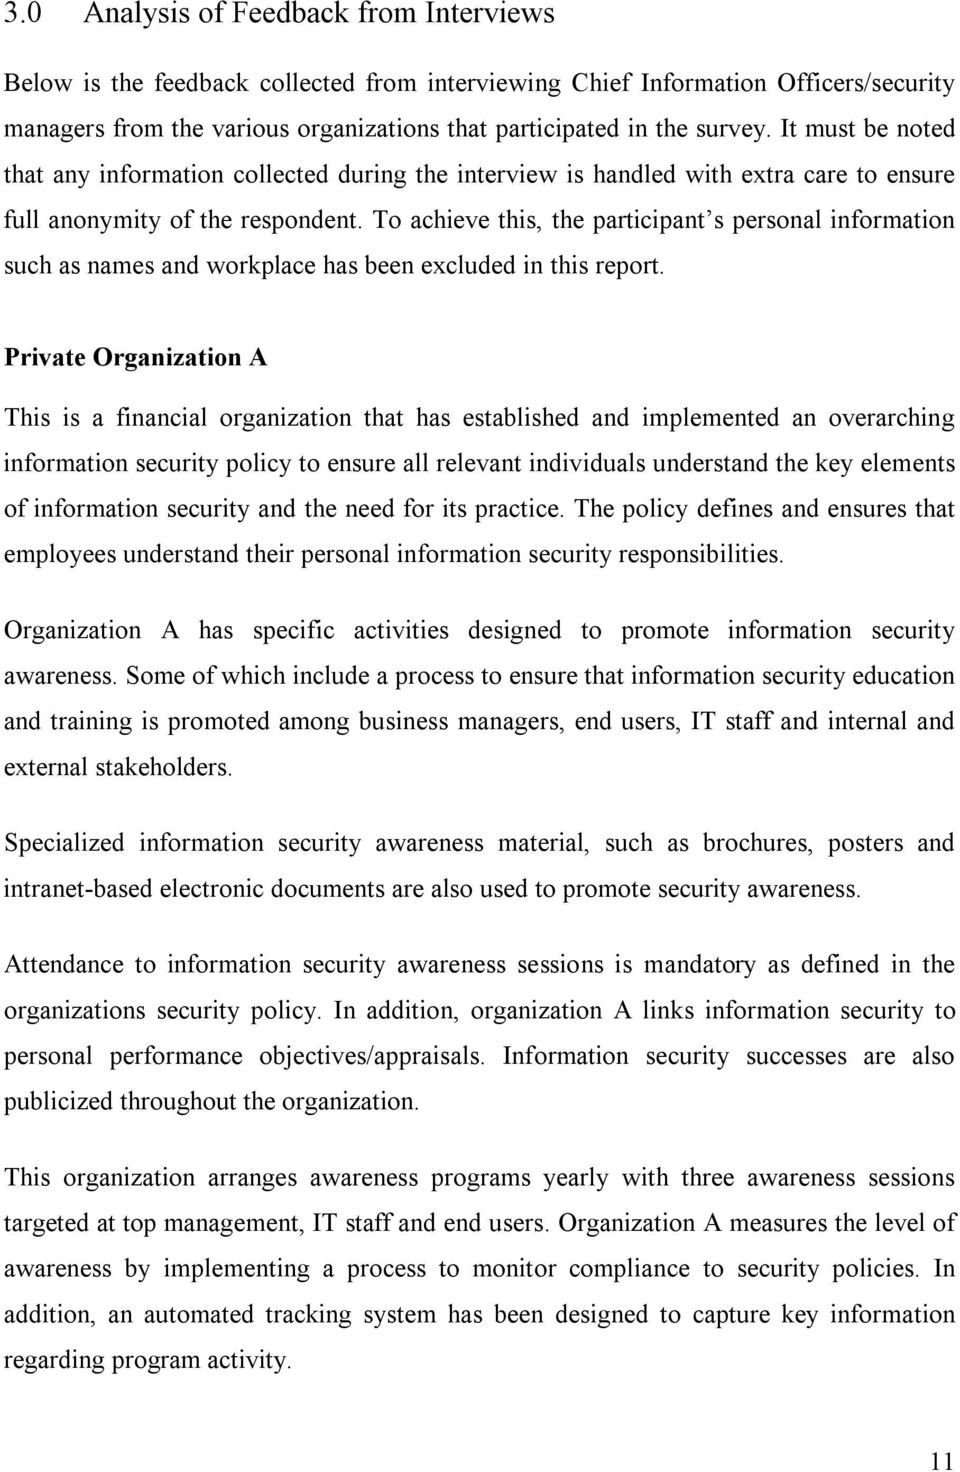 To achieve this, the participant s personal information such as names and workplace has been excluded in this report.